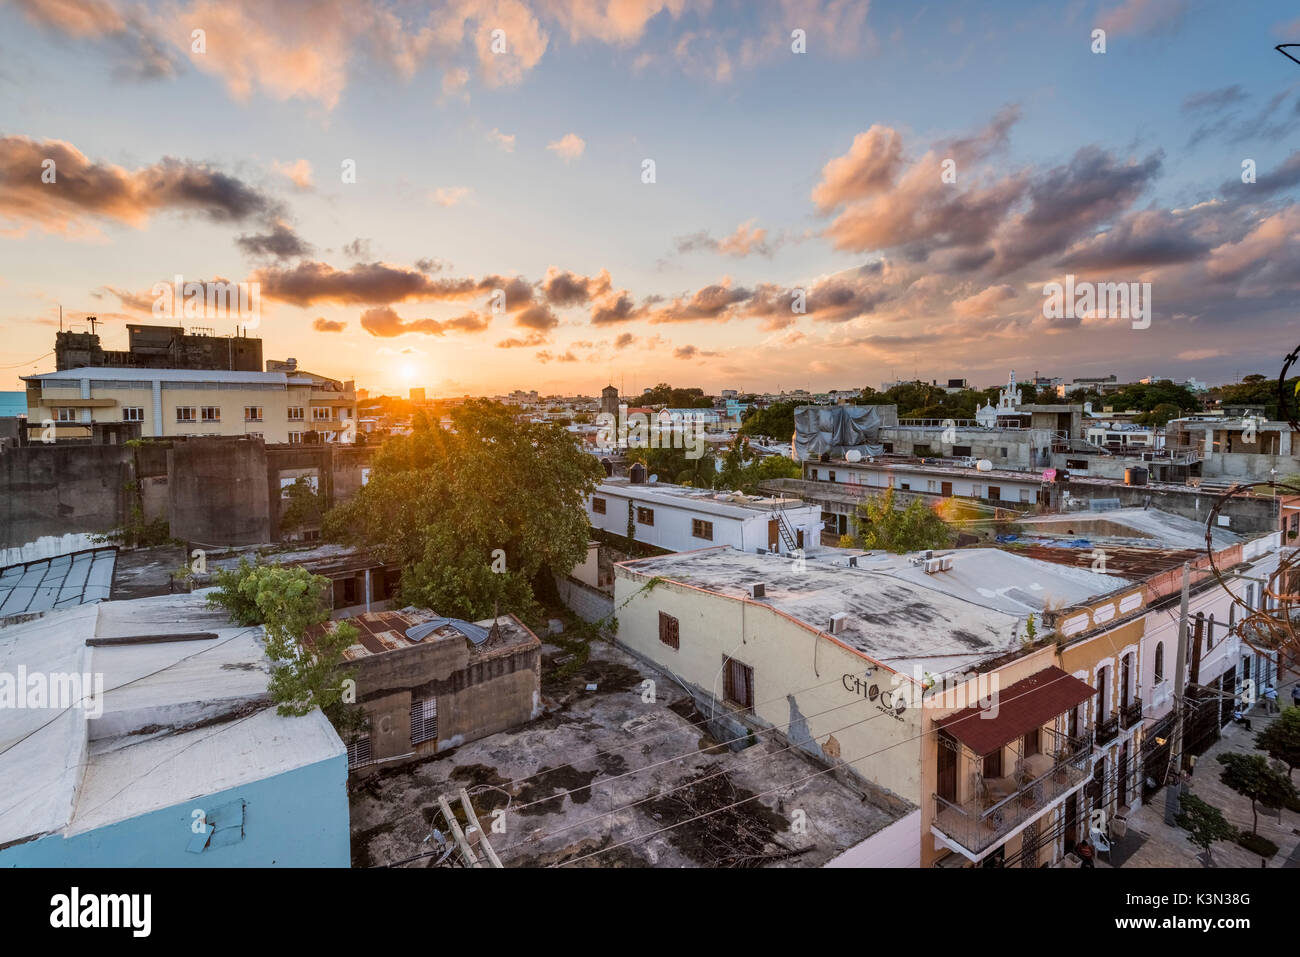 Colonial Zone (Ciudad Colonial), Santo Domingo, Dominican Republic. Cityscape at sunset. - Stock Image